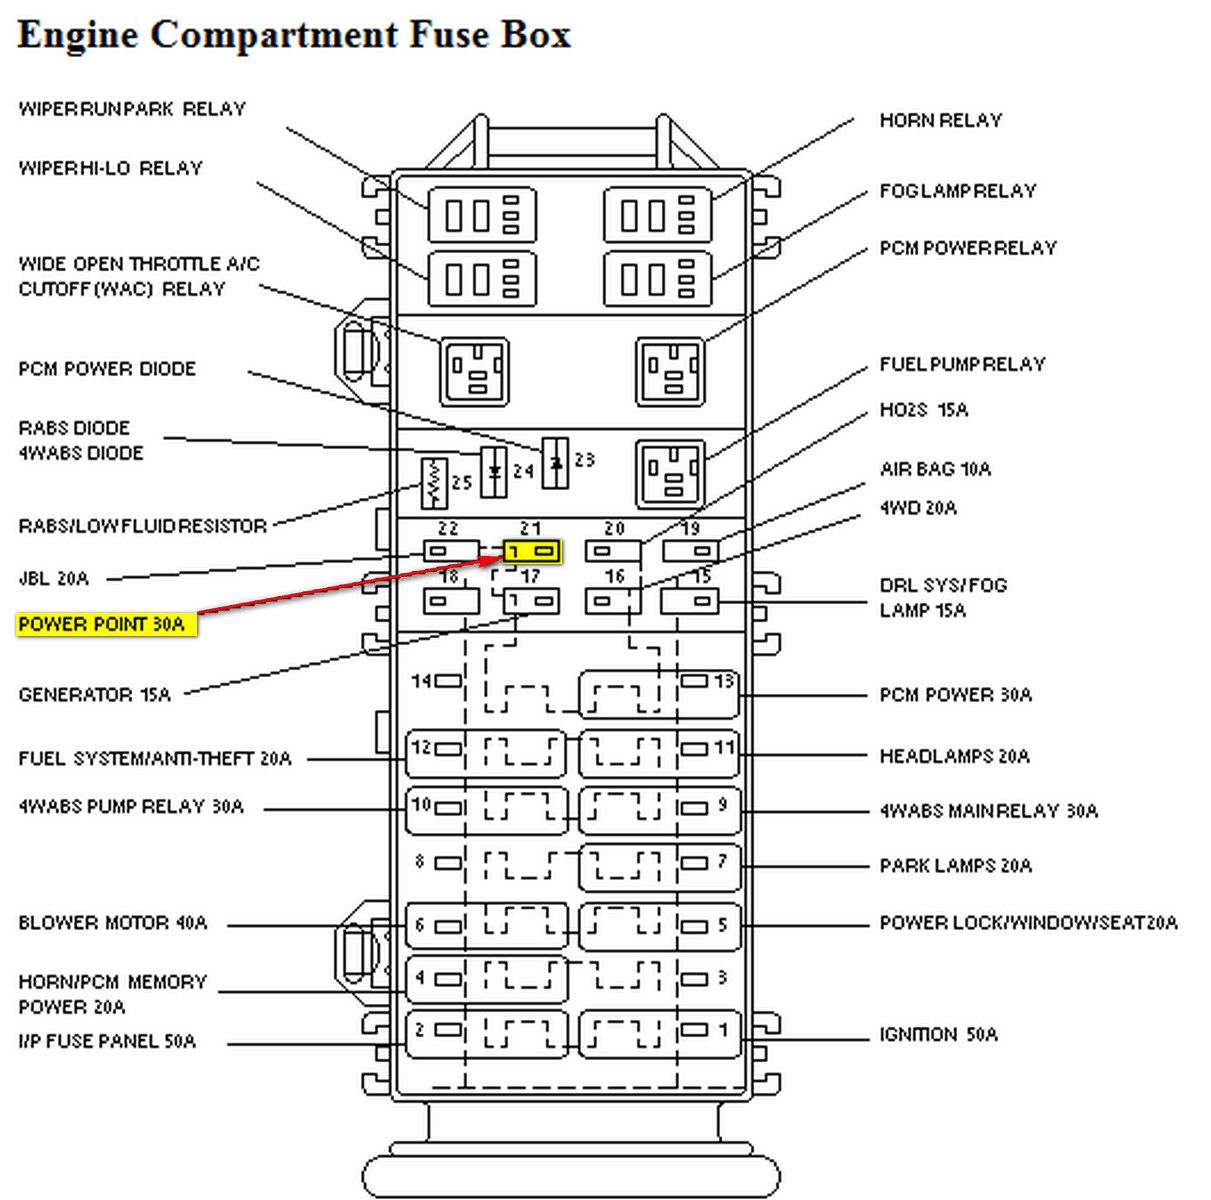 8a55967da7ae1bd251b795845886bd24 96 explorer fuse panel schematic ford explorer 4x4 hello, 1996 2011 ford explorer fuse box diagram at crackthecode.co